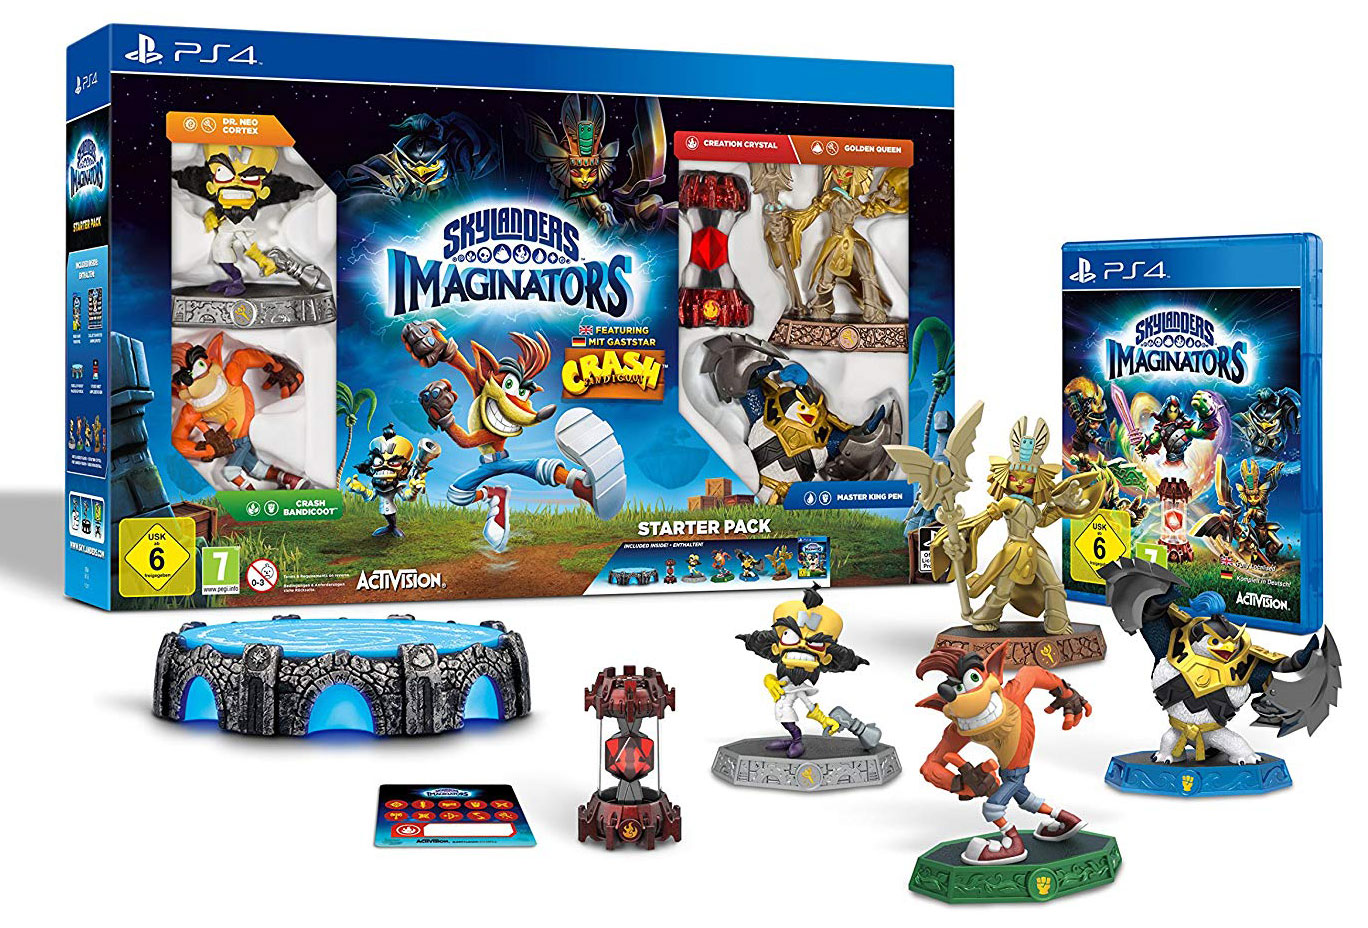 Skylanders: Imaginators Starter Pack - Crash Bandicoot Edition PS4